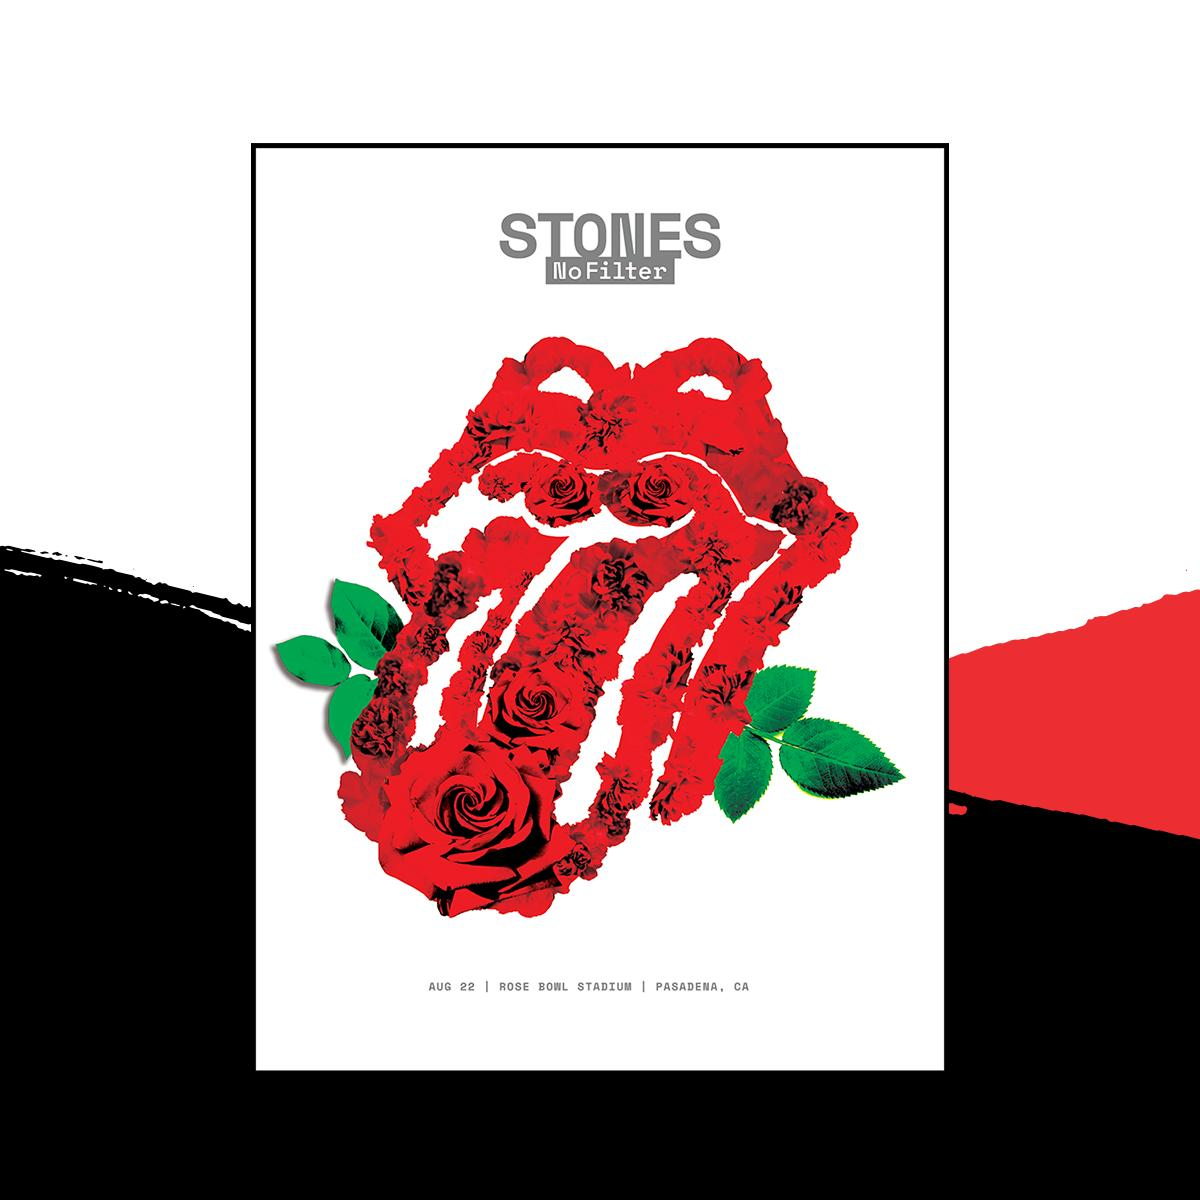 The Rolling Stones (@RollingStones) | Twitter